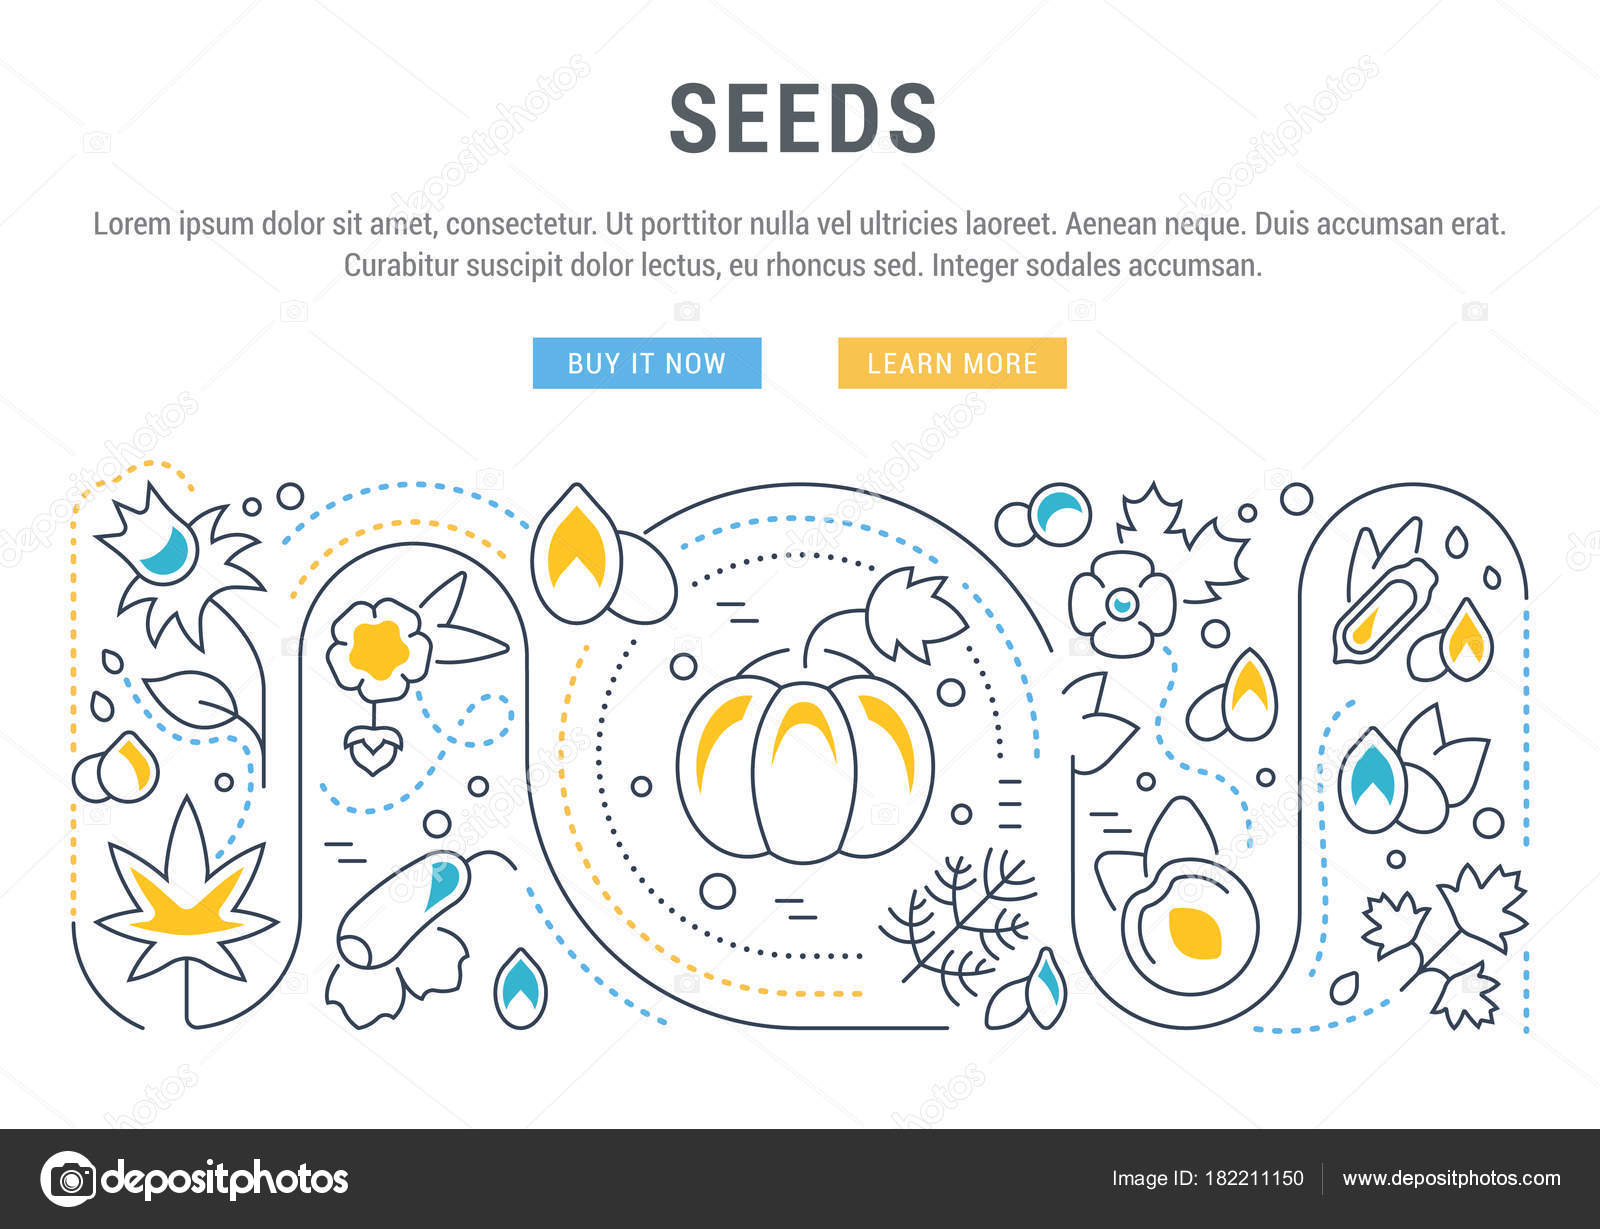 line illustration seeds concept web banners printed materials